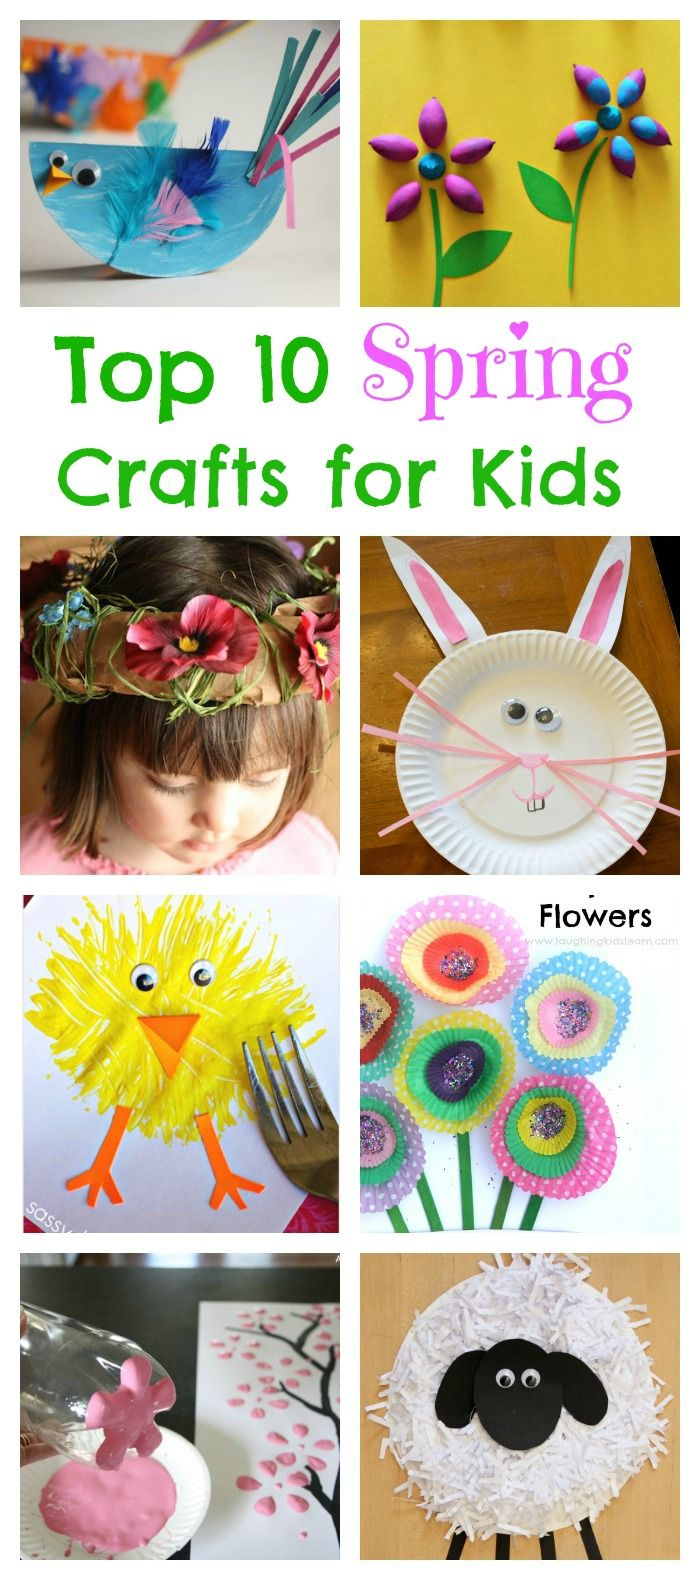 10 Fun and Cute Spring Crafts for Kids. Flower Crafts, Butterfly craft, Bunny Craft, Sheep Craft, Chick Craft and More!